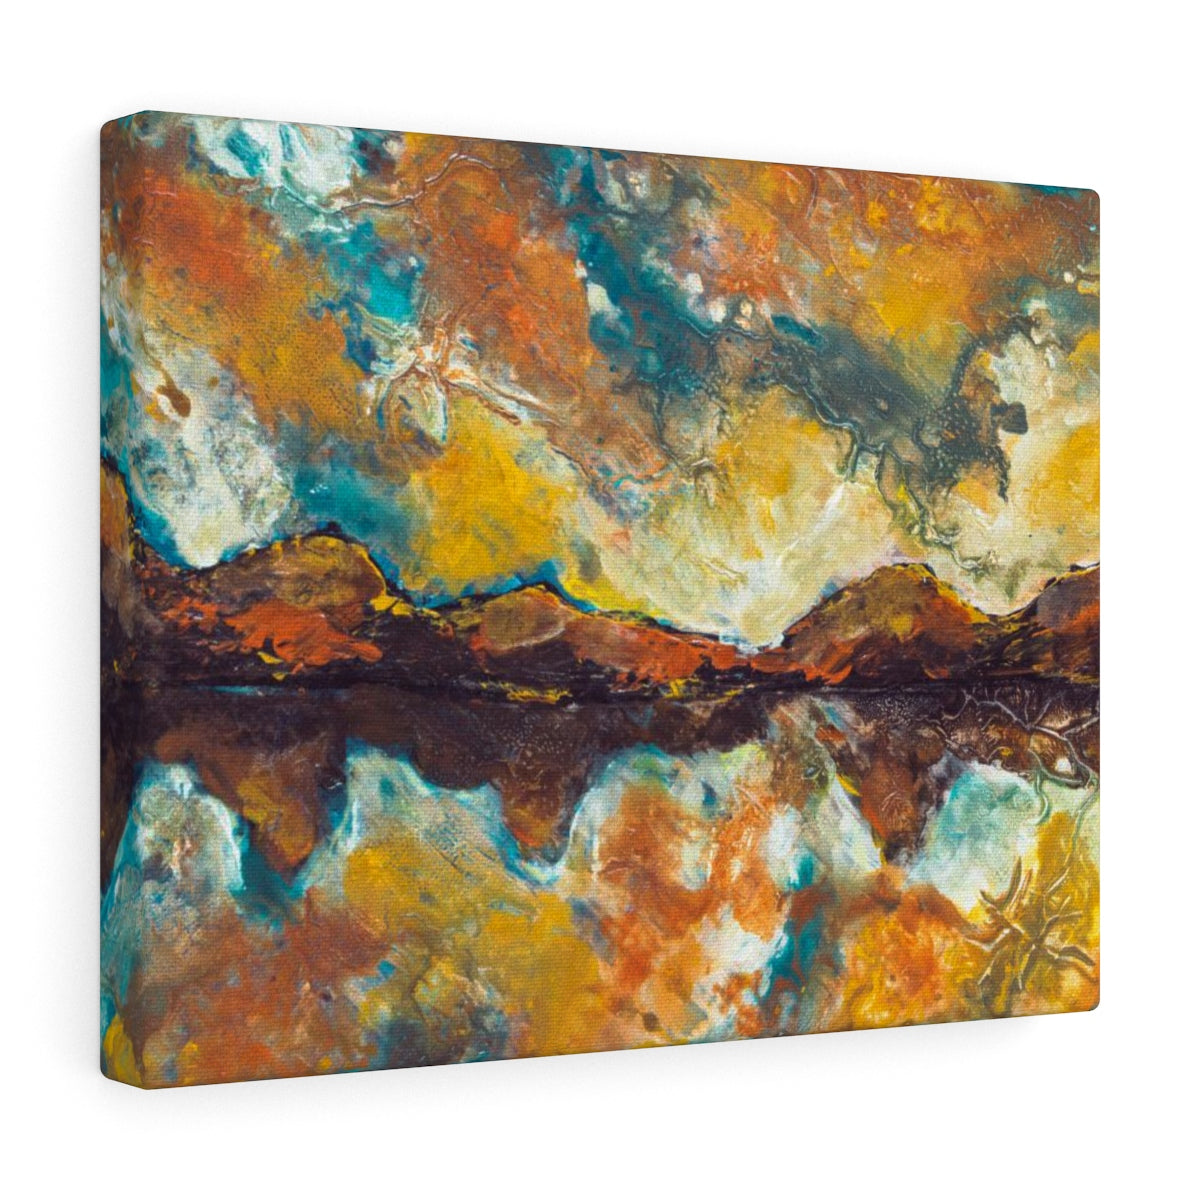 Mountain Canvas Print - Abstract Wall Decor Made by Artist | Brandless Artist